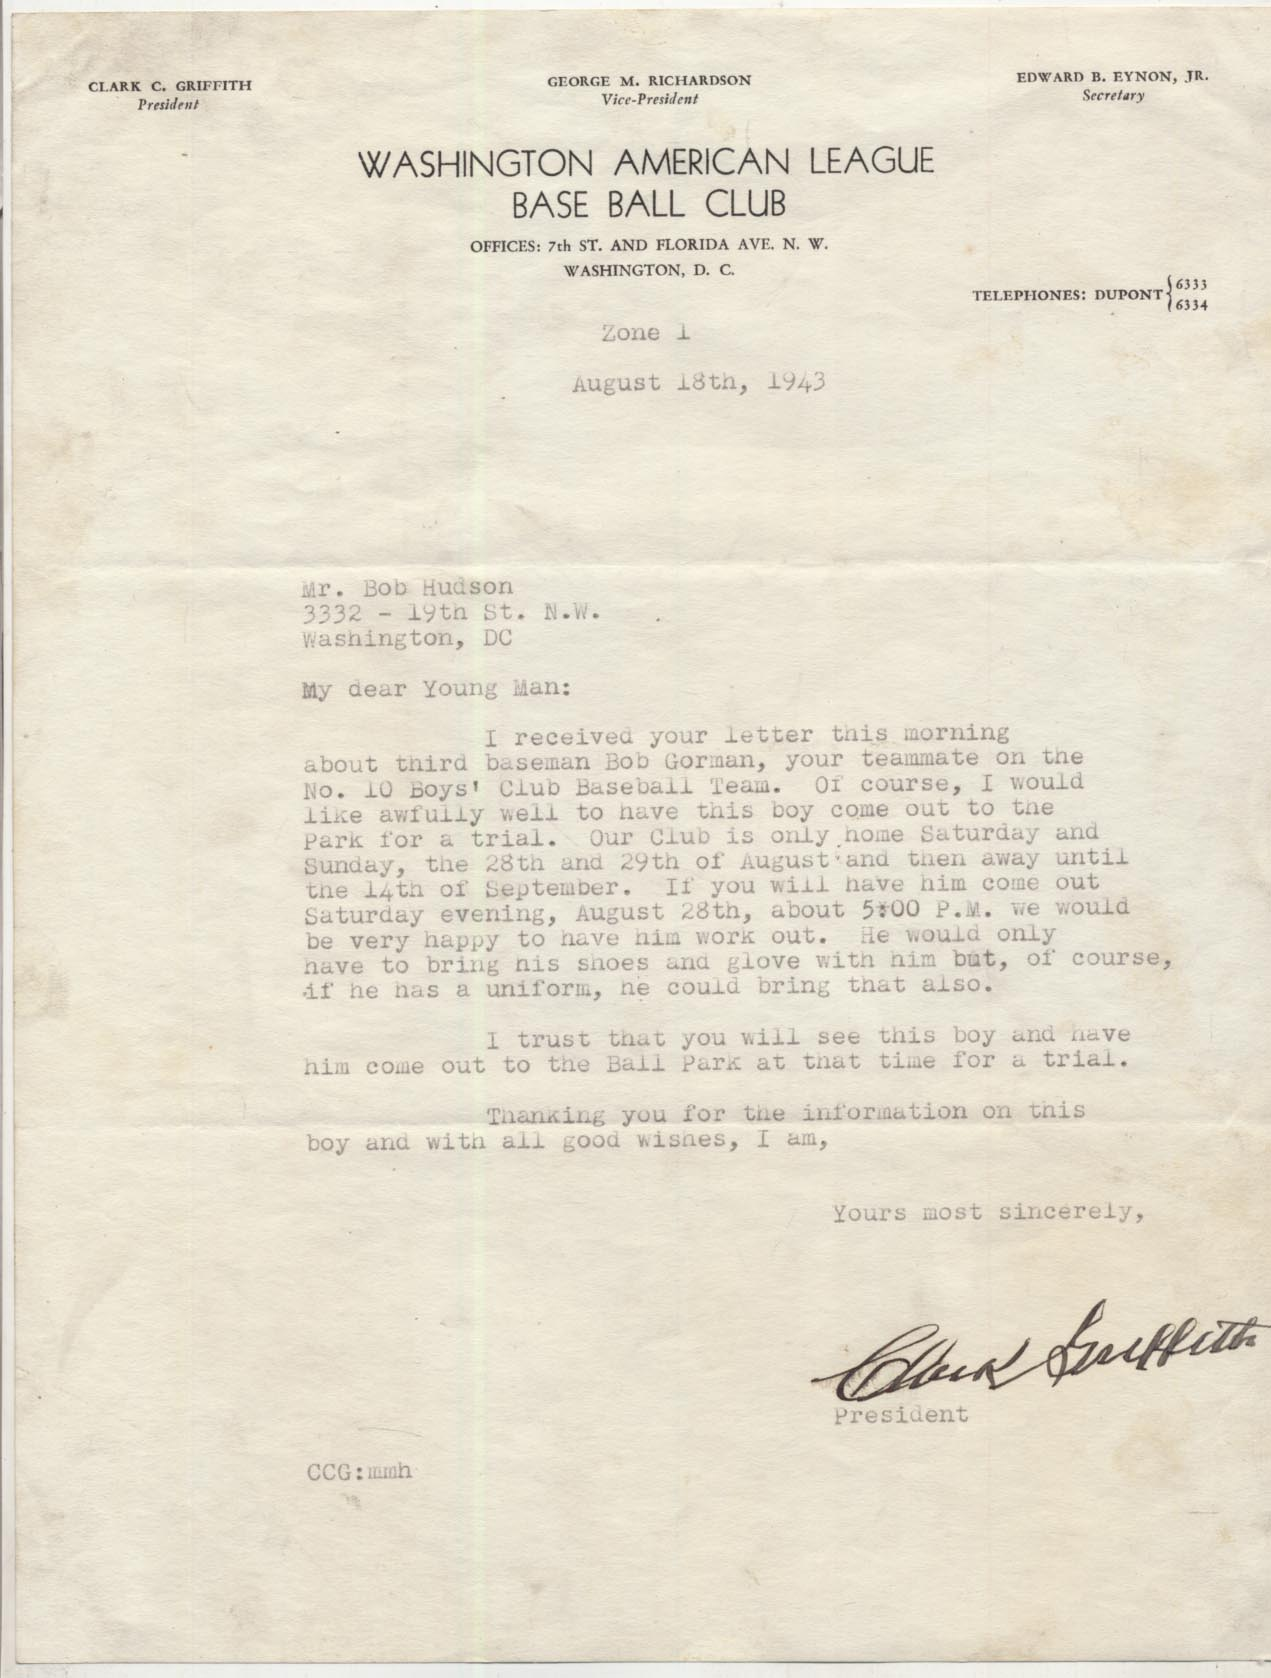 Lot #7  Letter  Griffith, Clark Cond: 9.5